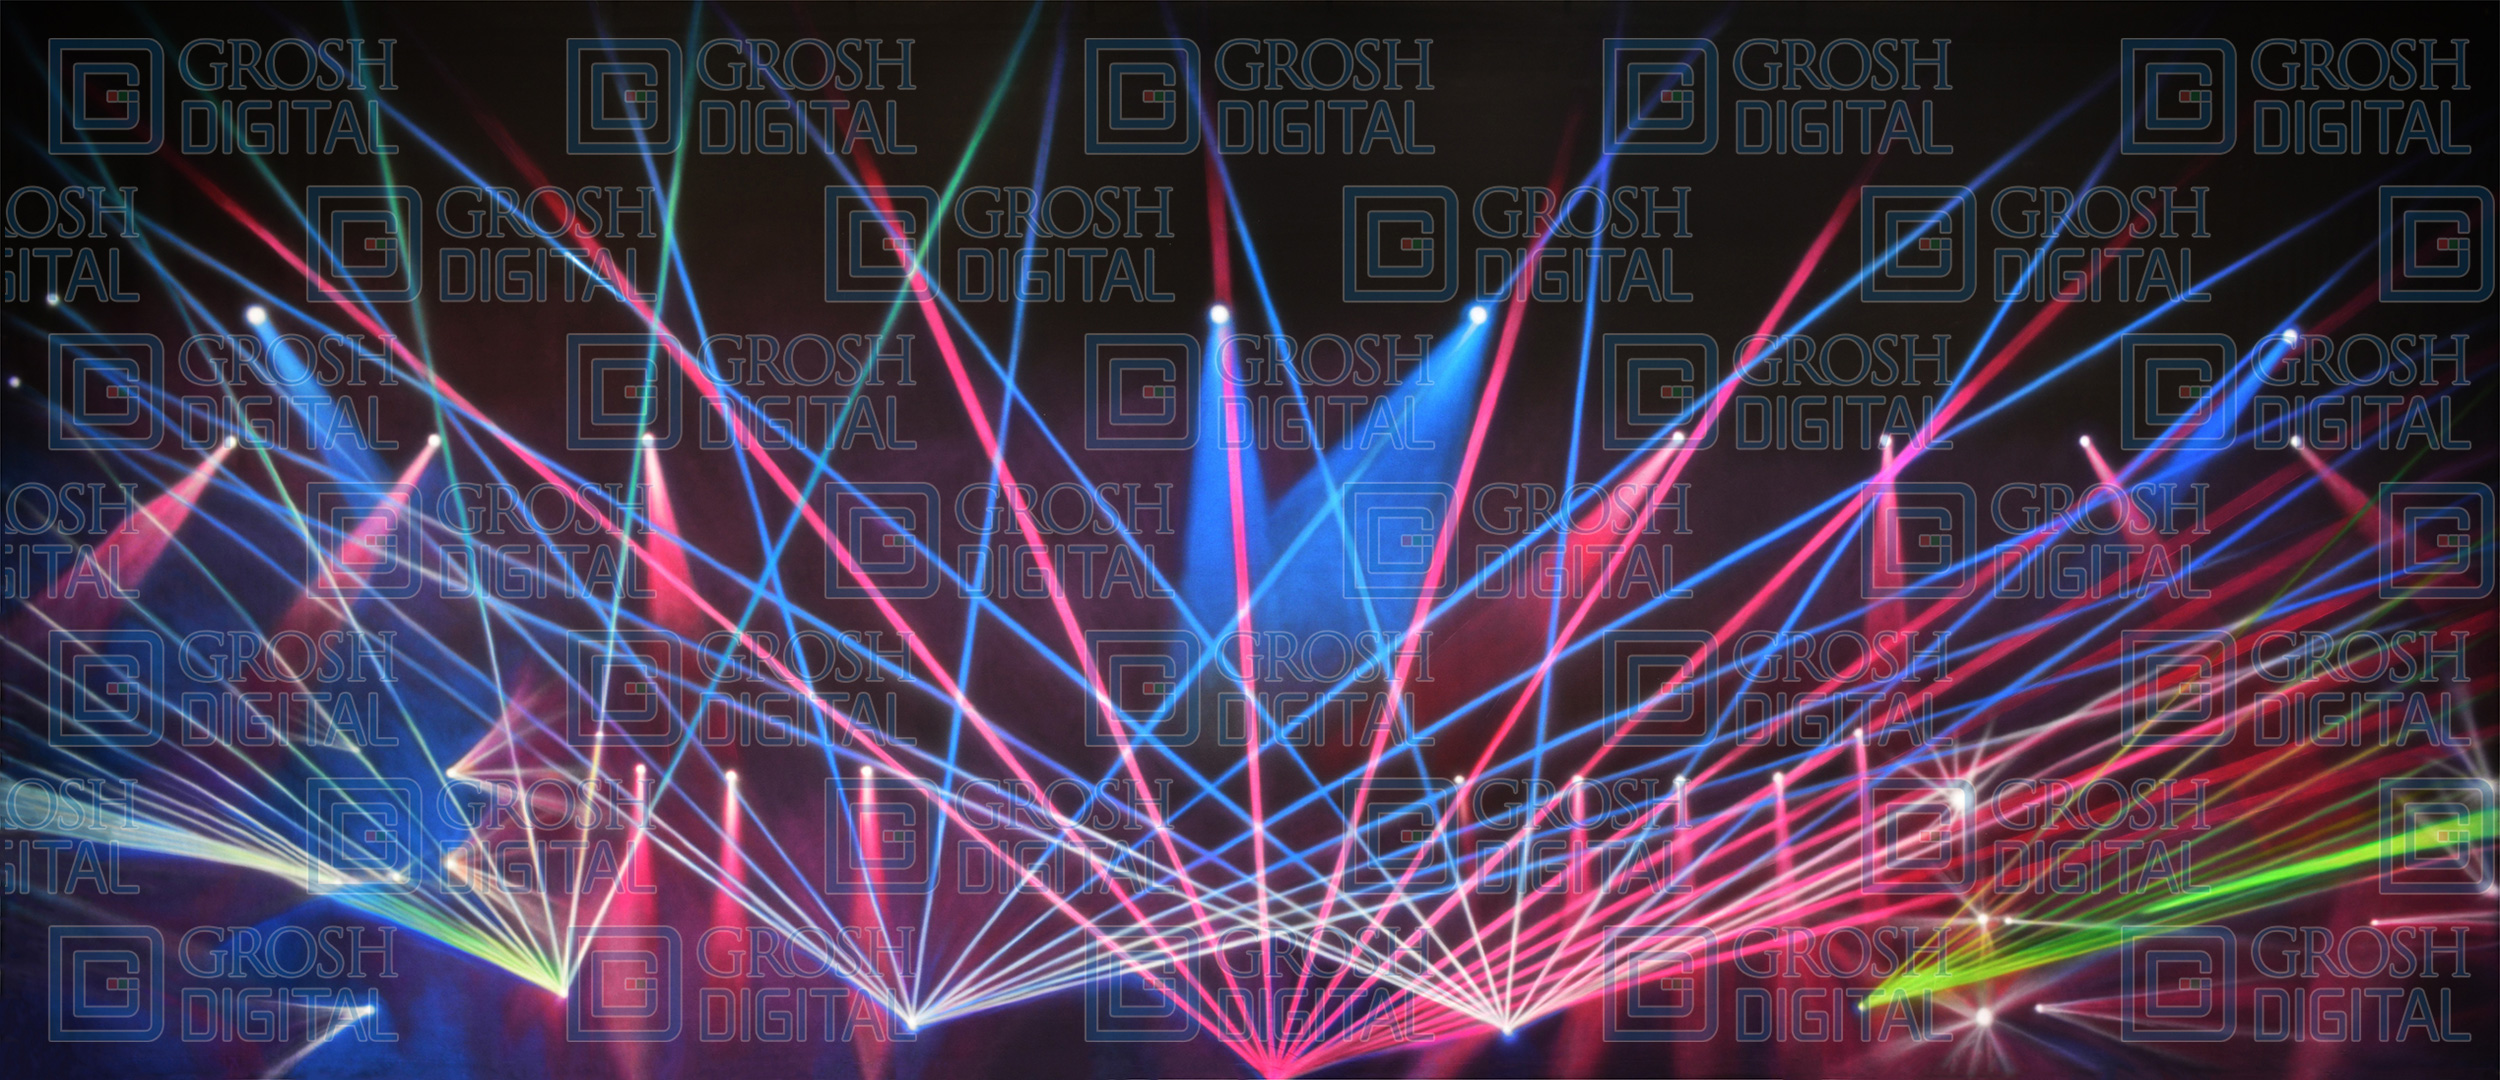 Dance lights projected backdrops grosh digital dance lights projected backdrop for abstract dance malvernweather Image collections